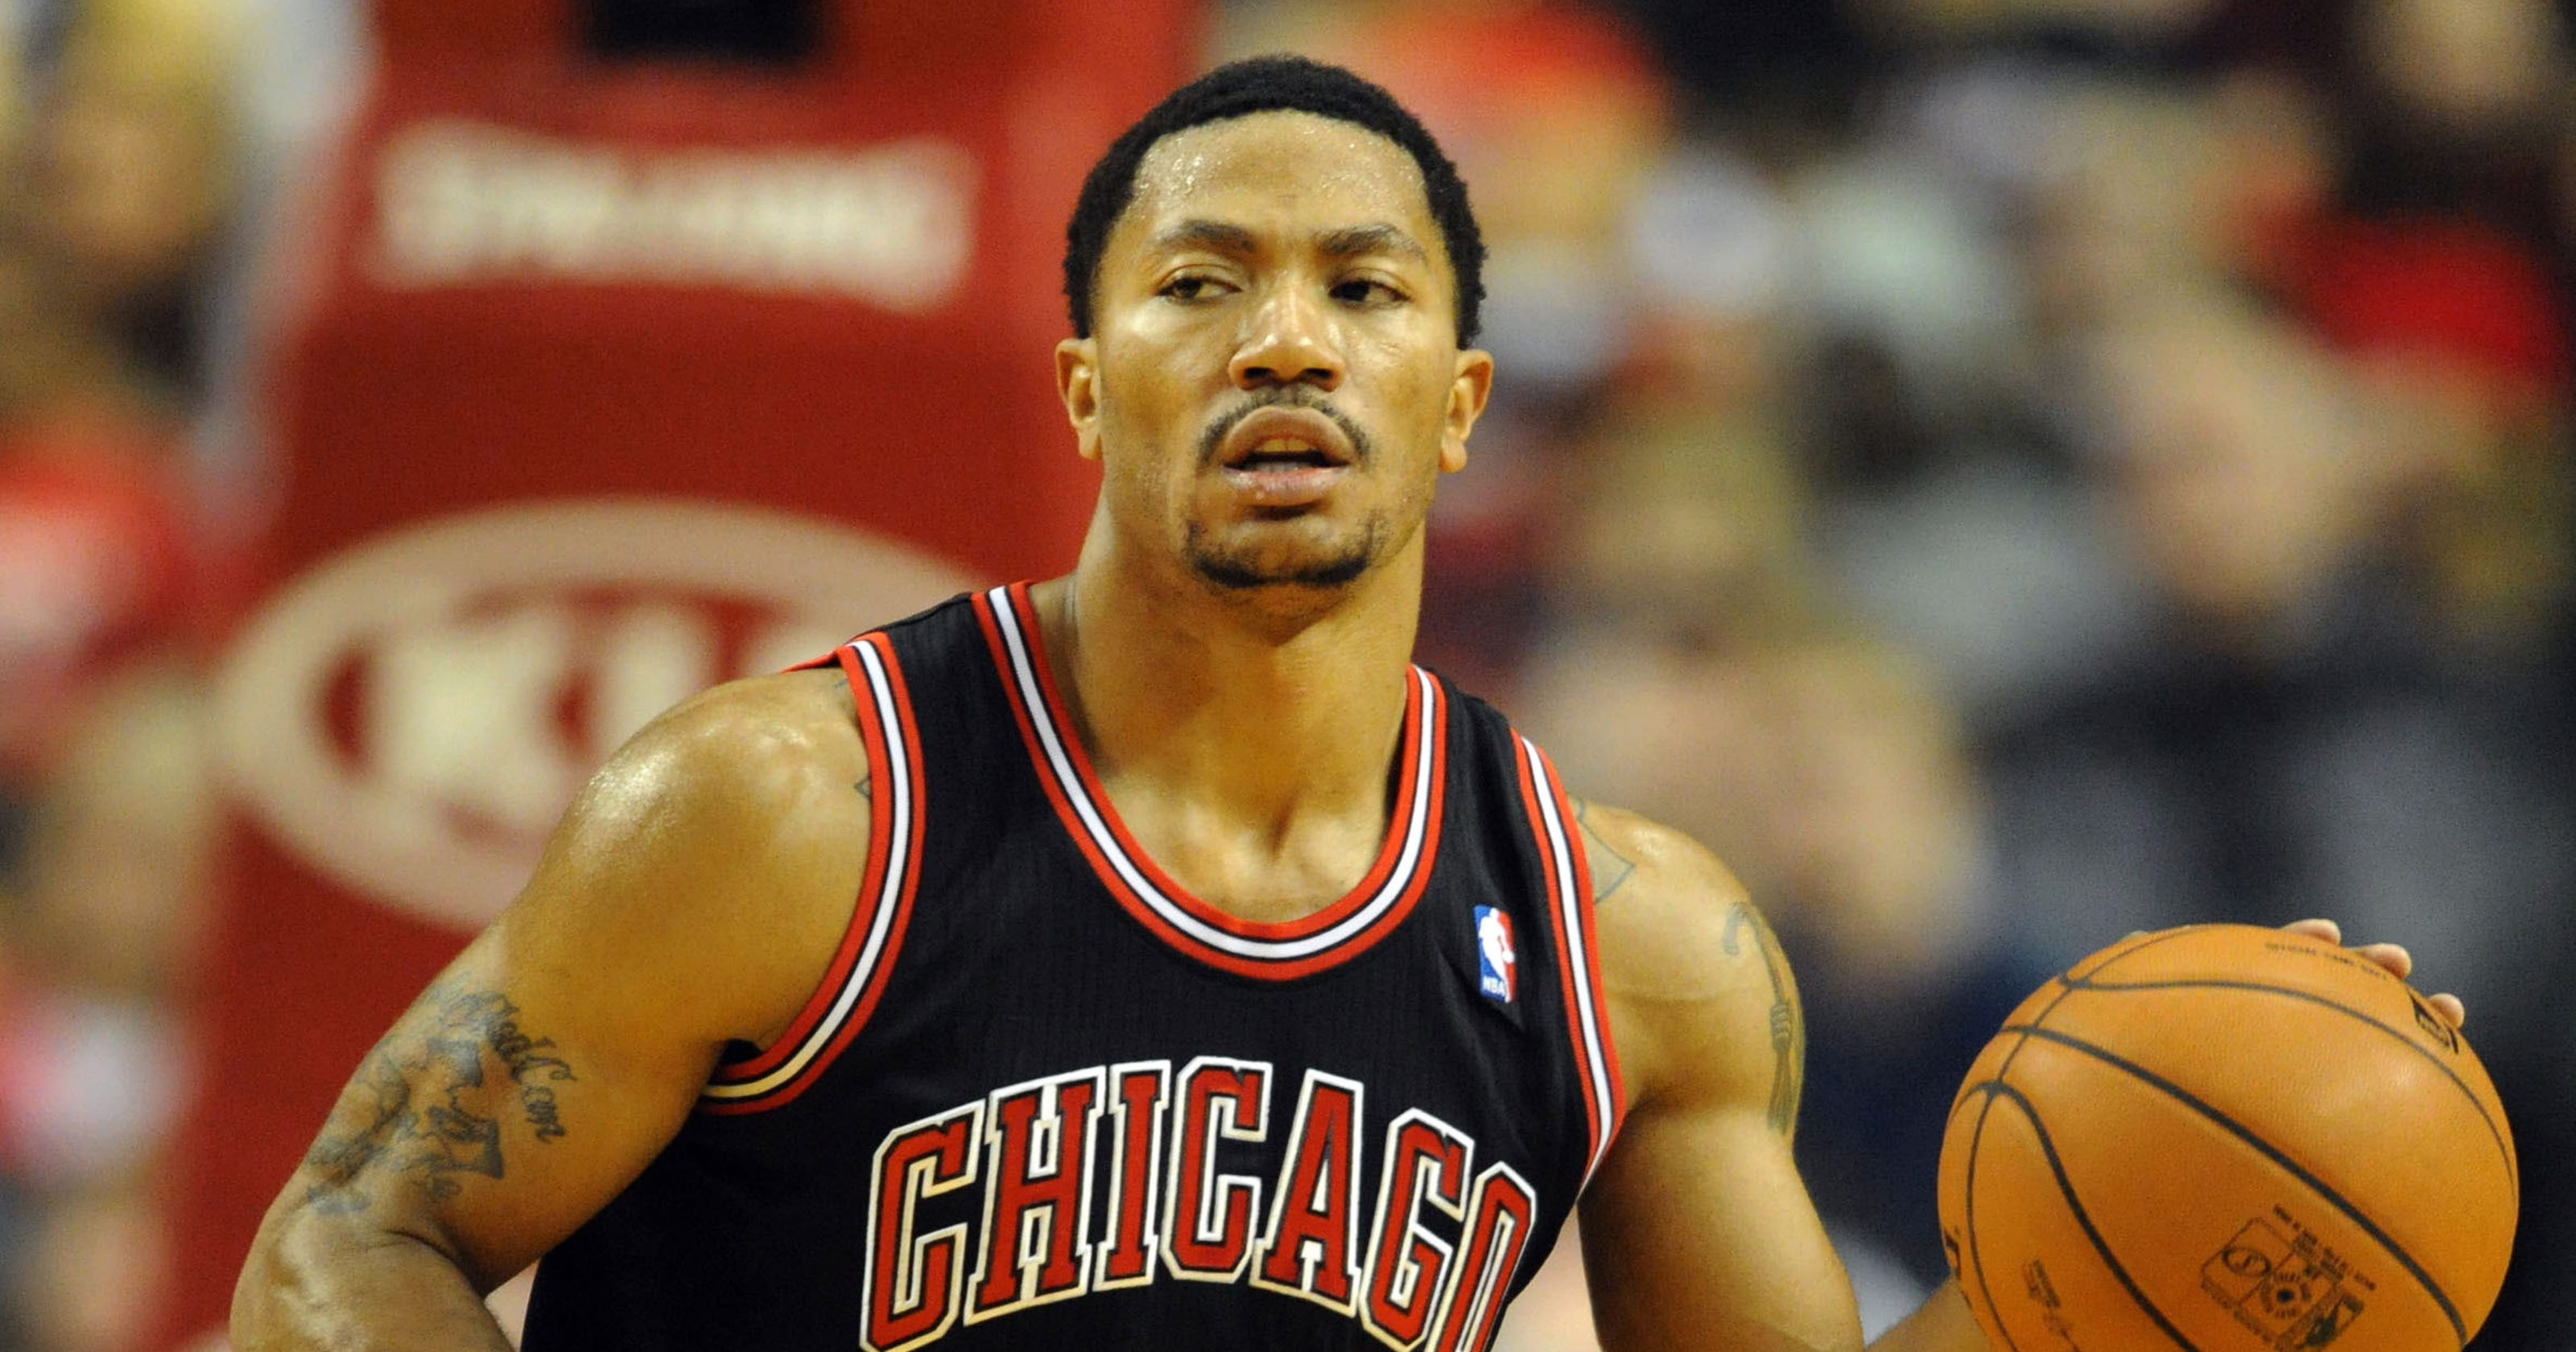 a6f82eddc30 Could Derrick Rose play this season  Maybe